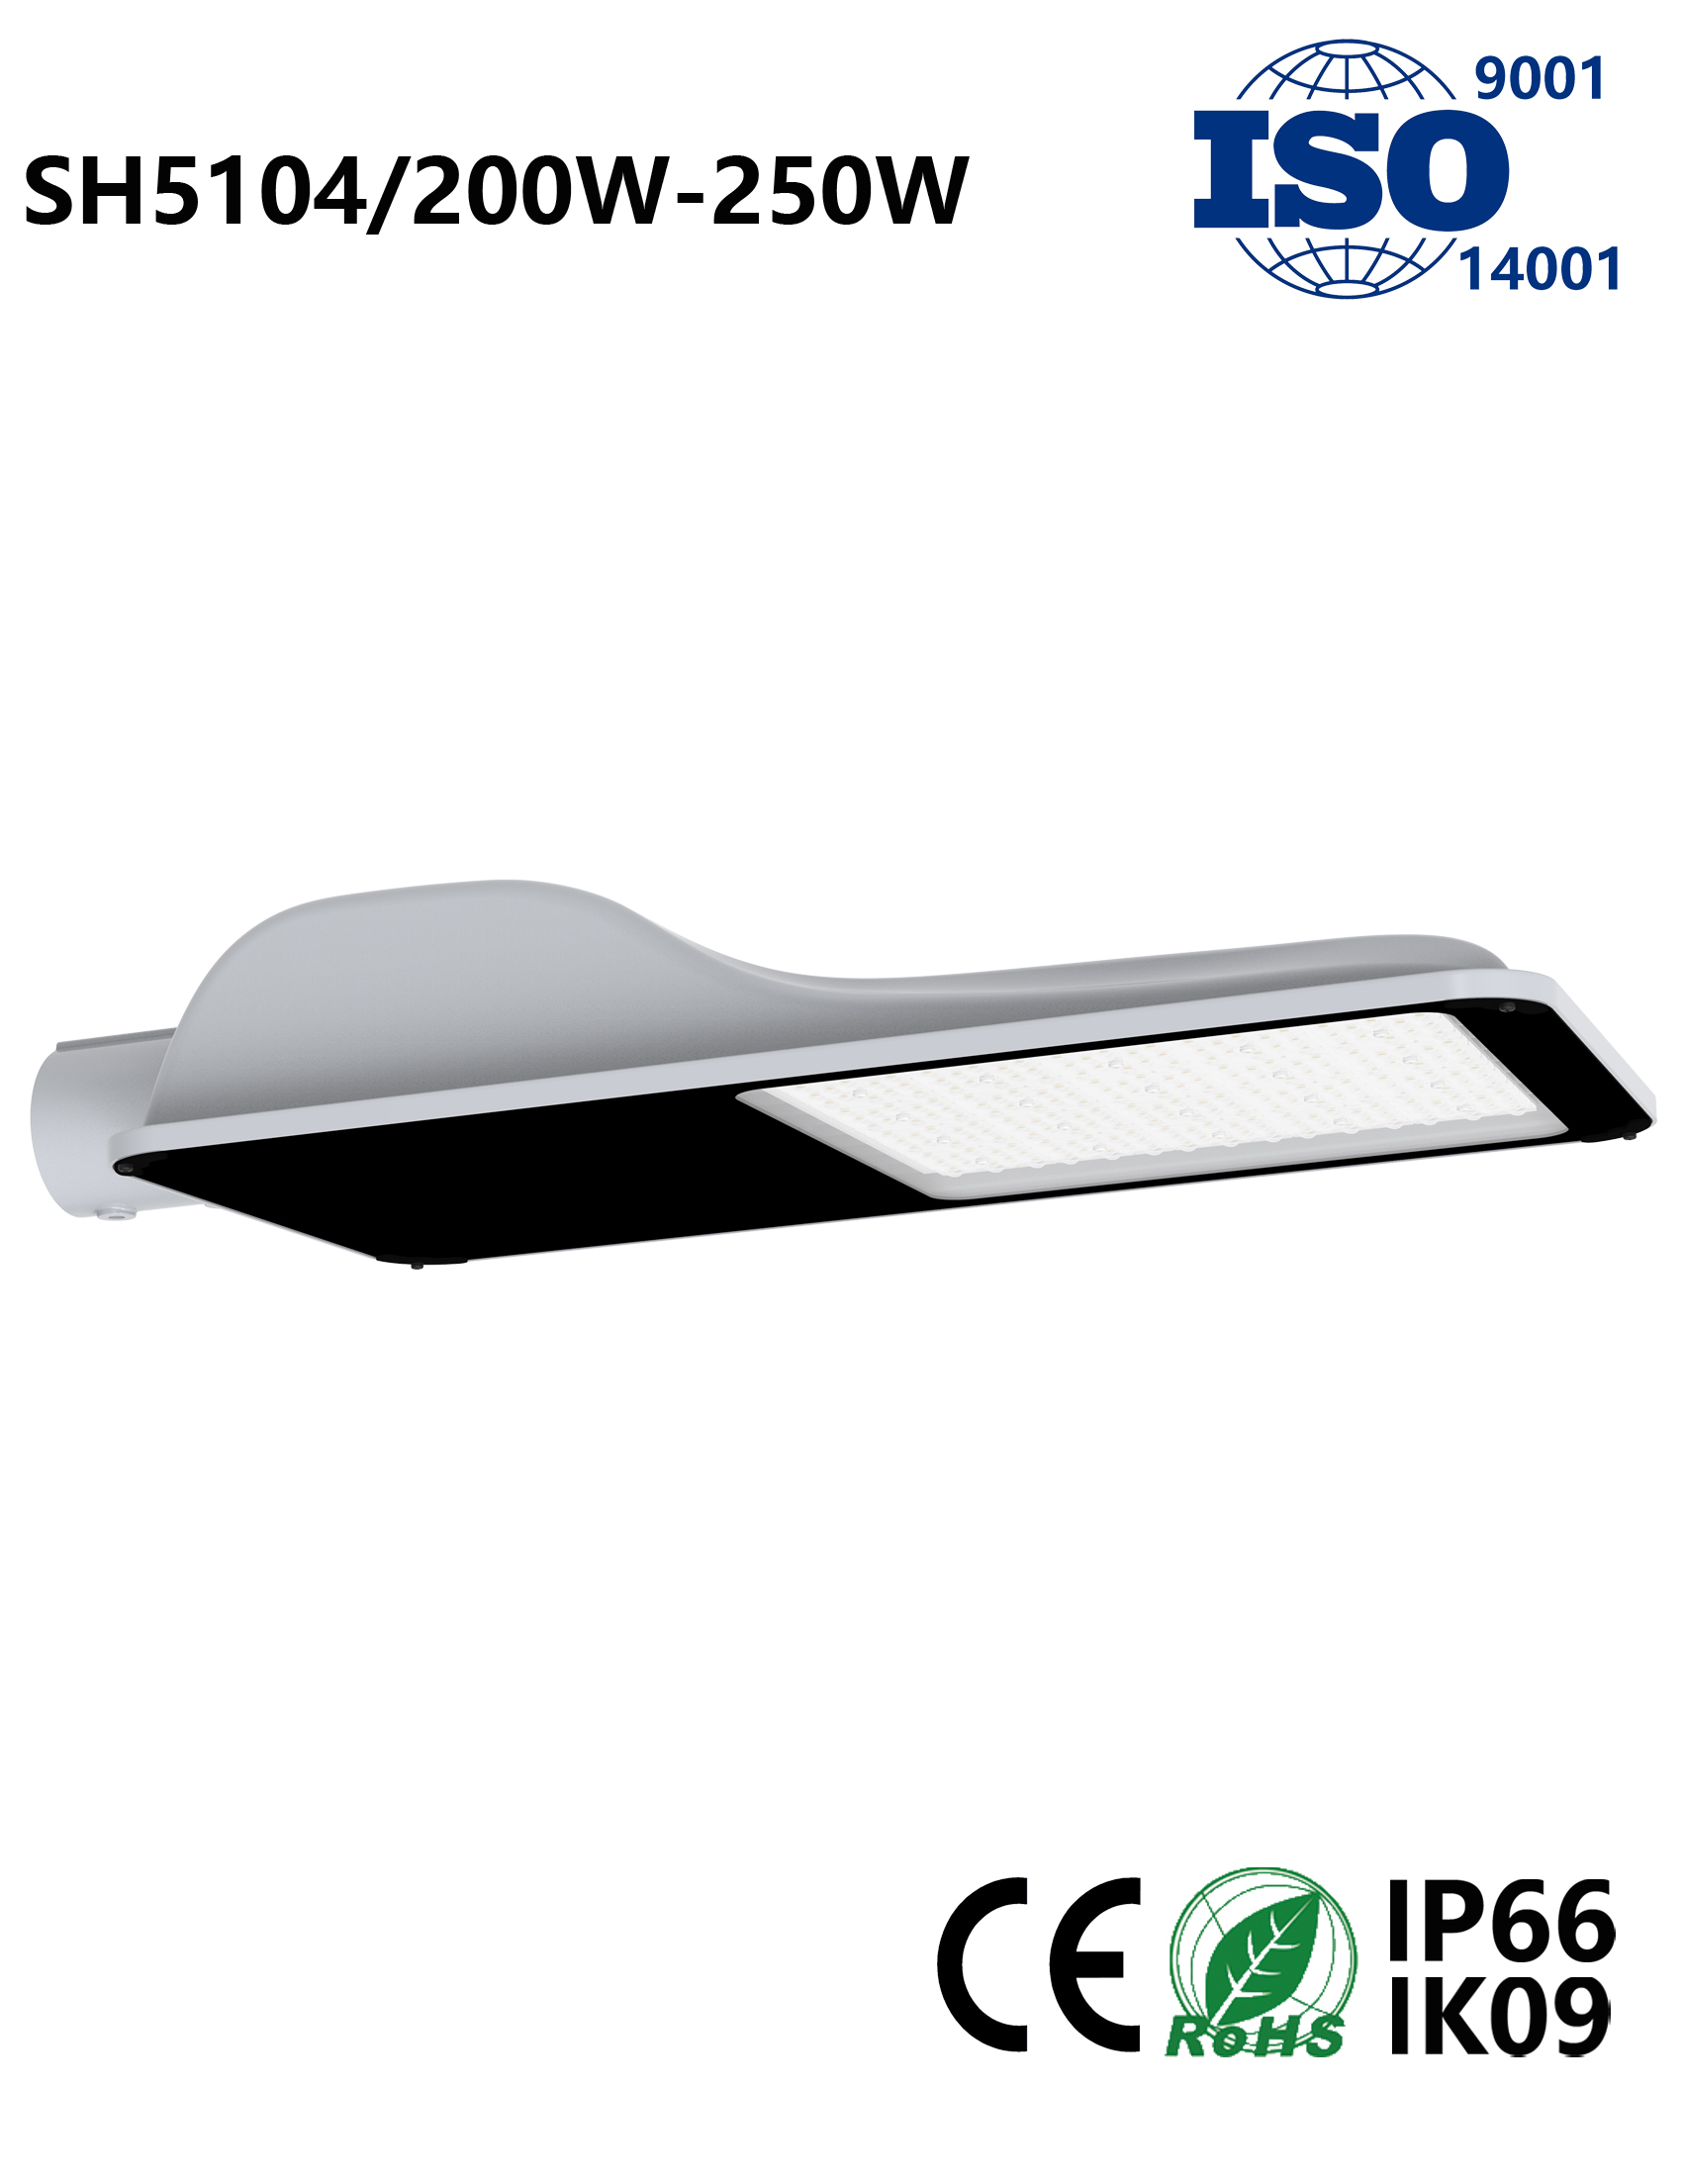 SH5104 200W-250W LED Street Light